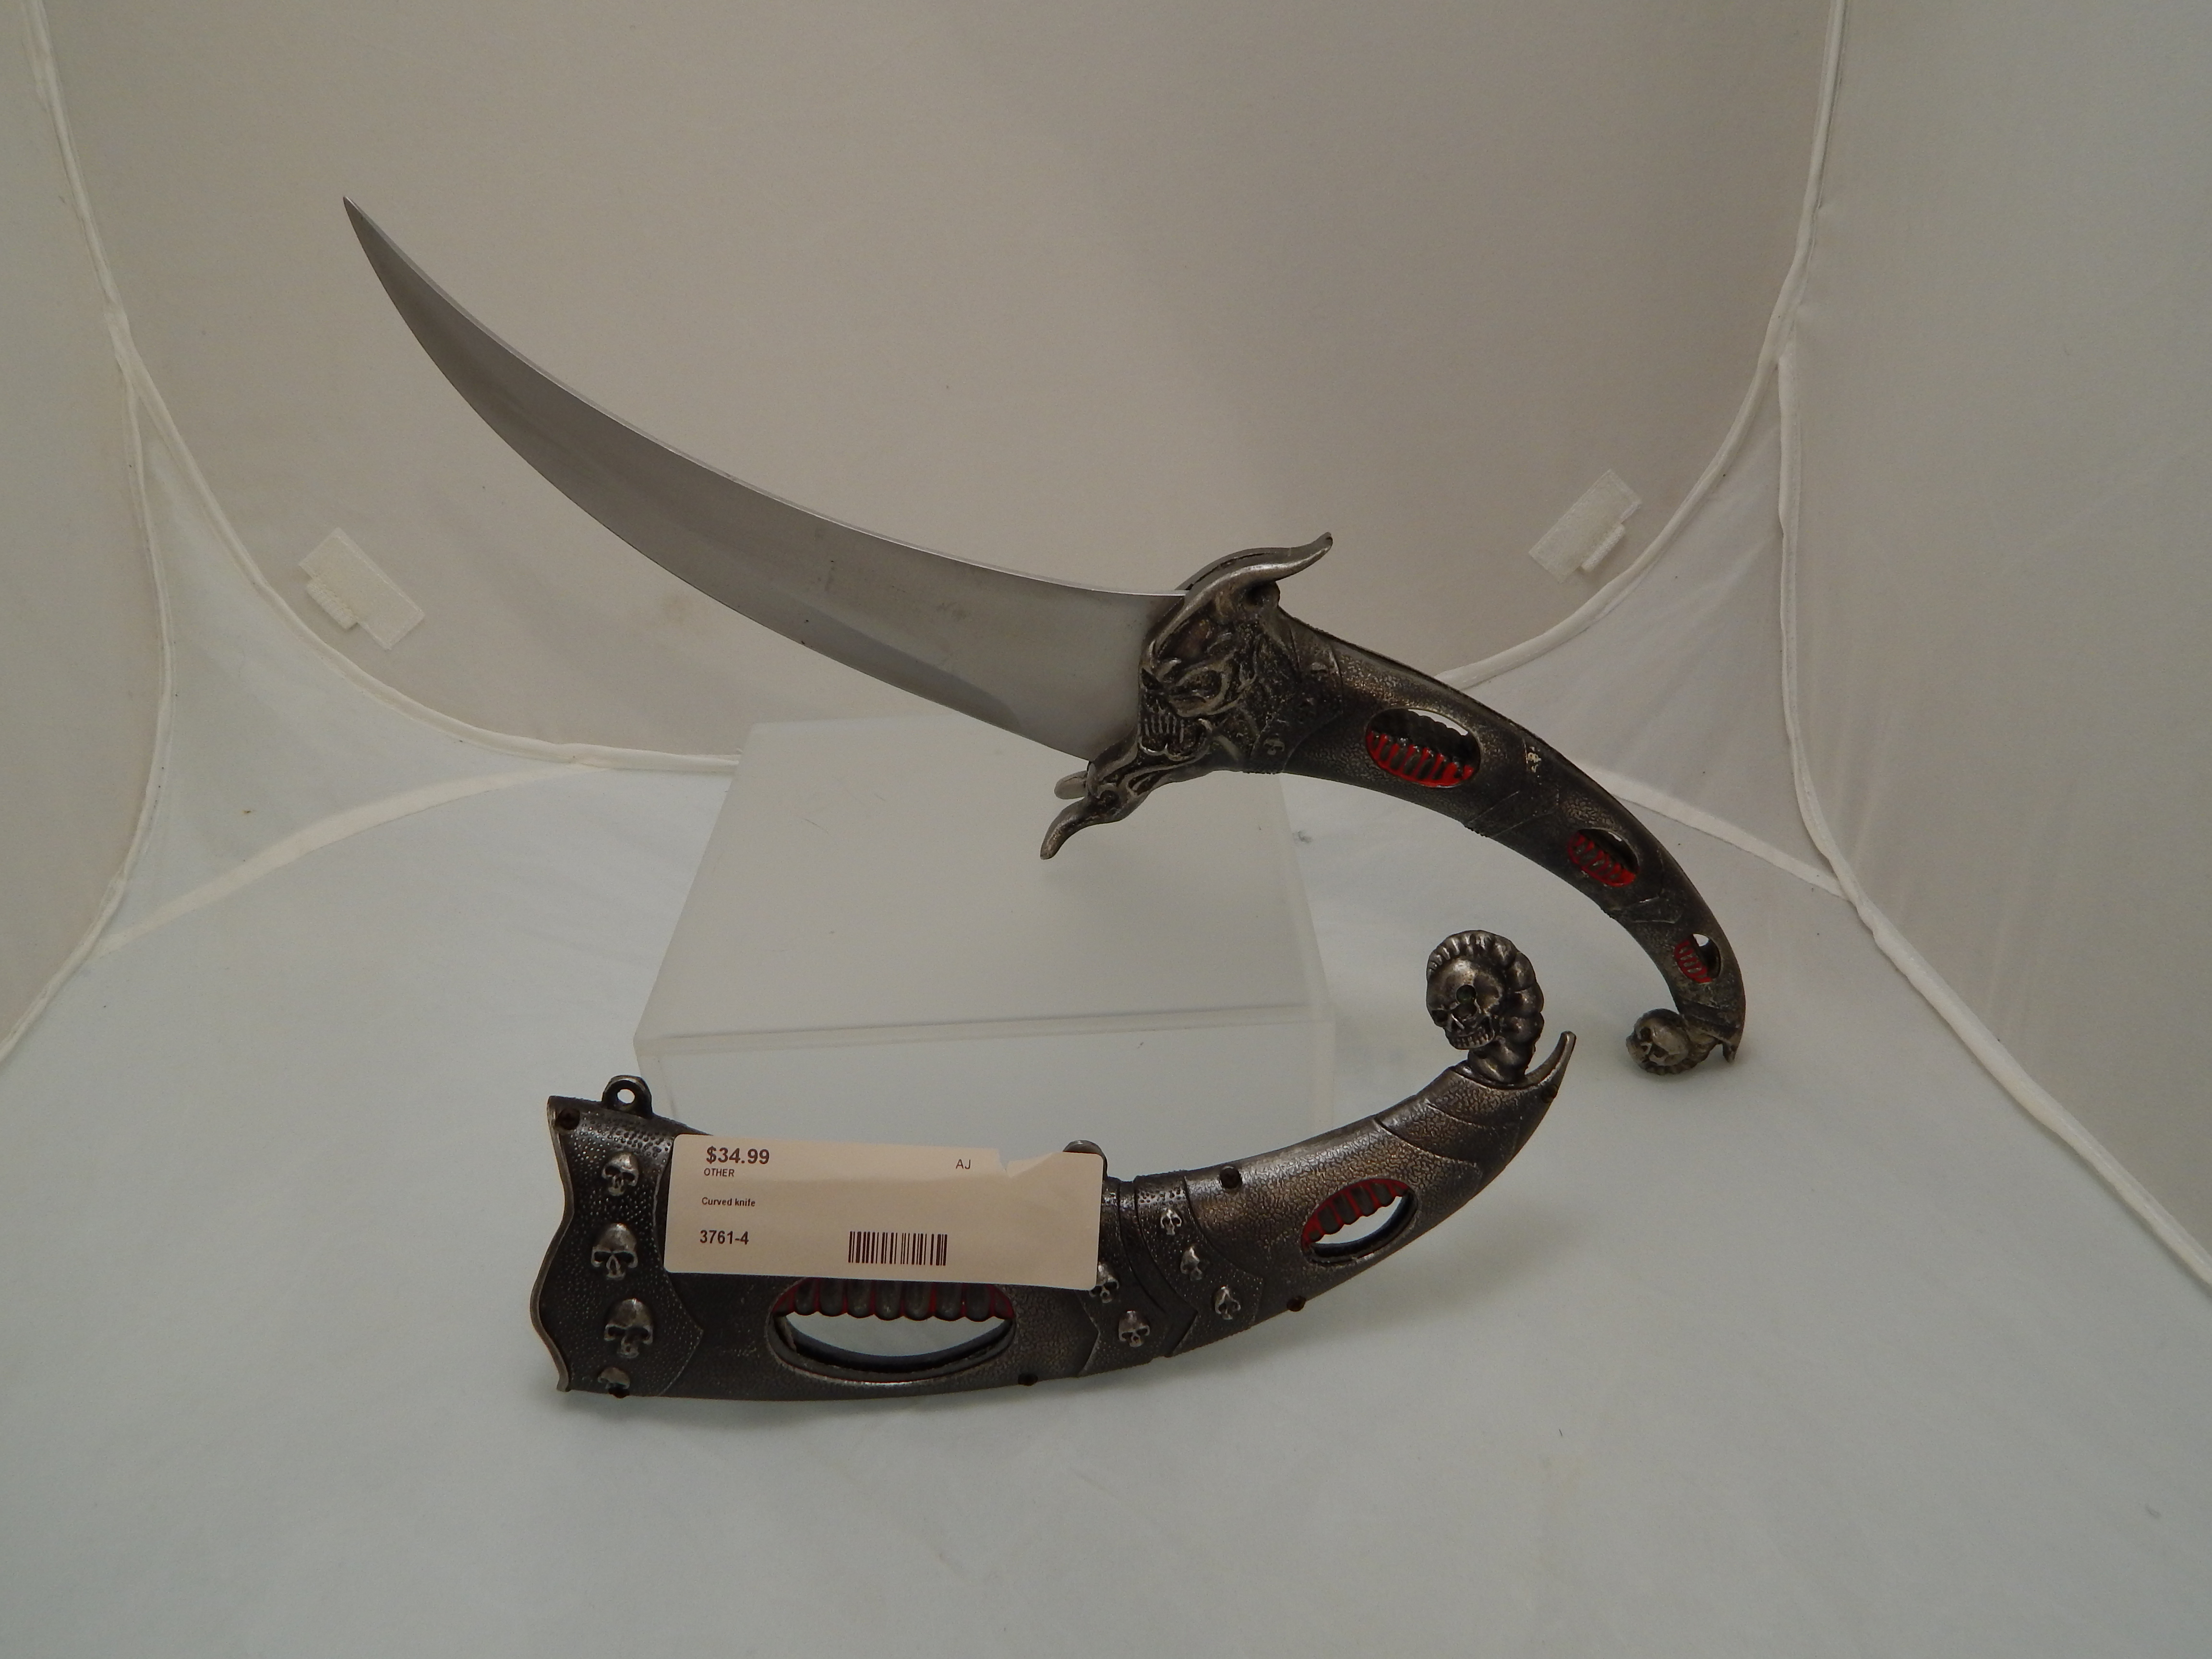 Curved knife